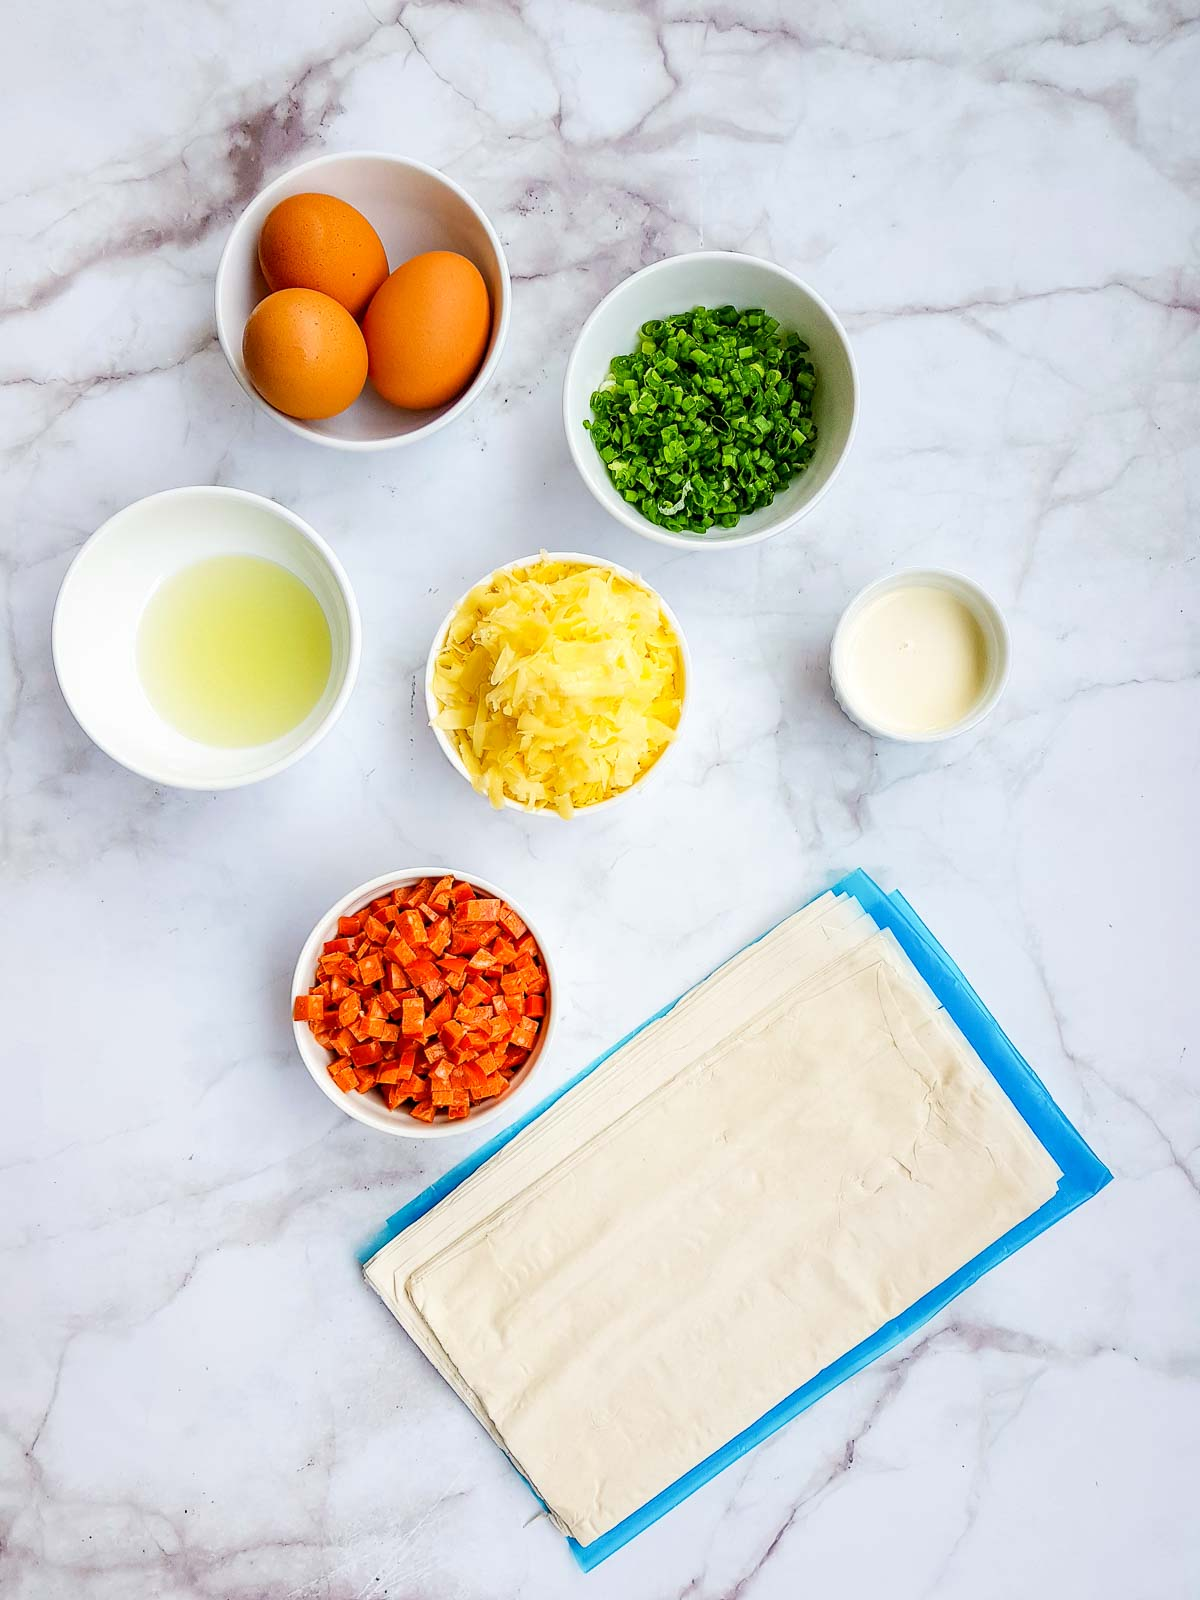 Ingredients to make mini quiches with phyllo dough crust.